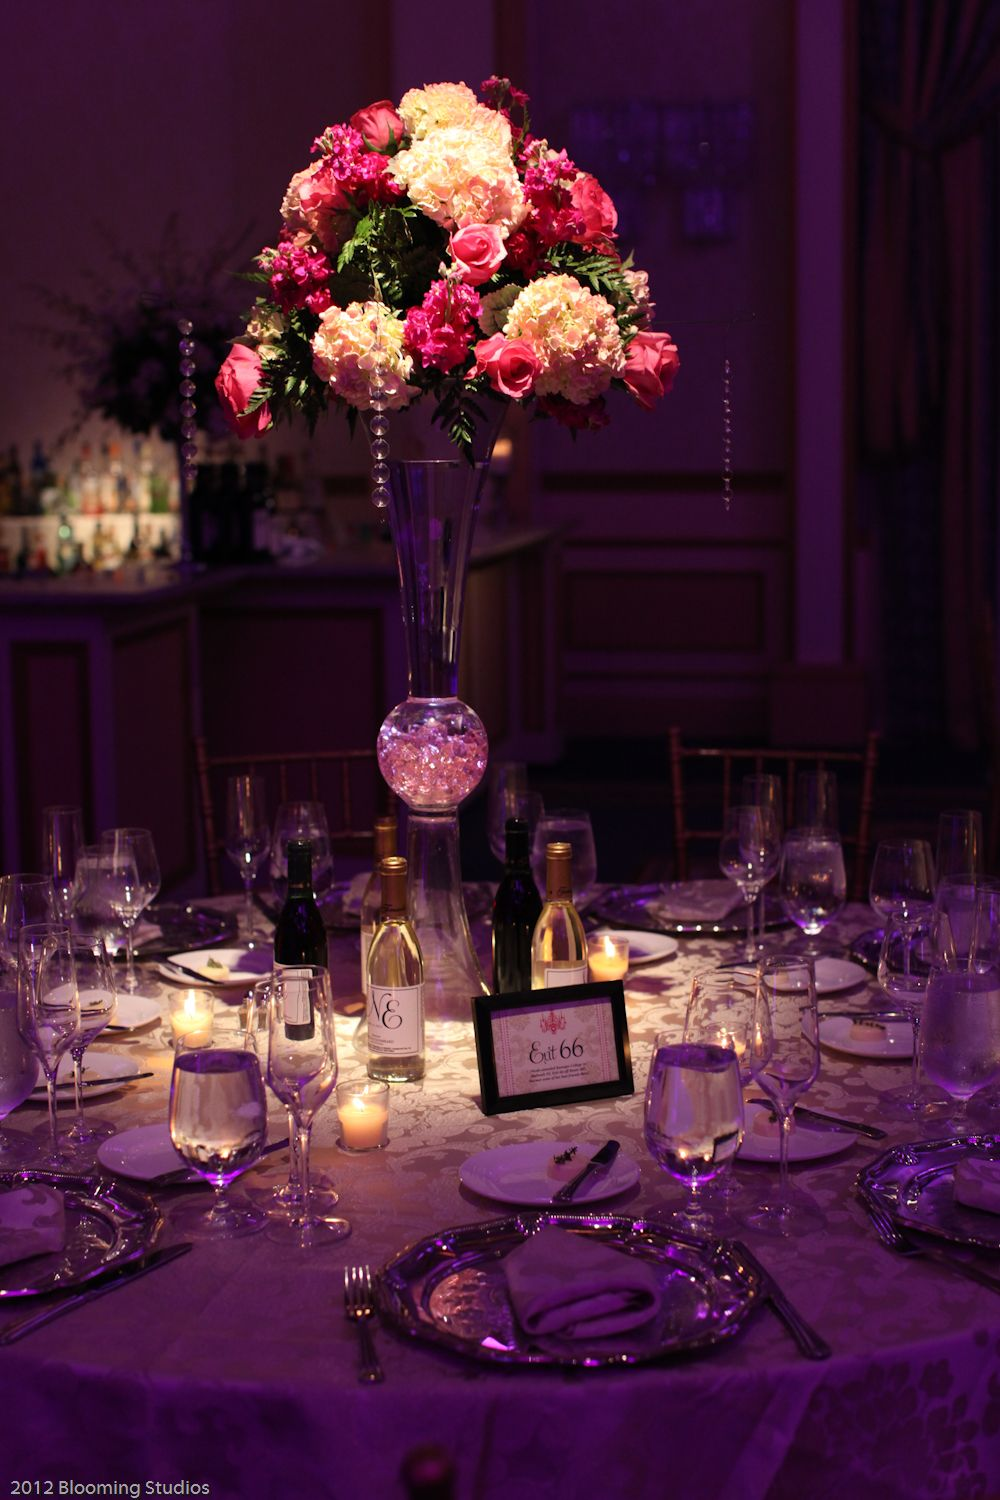 Beautiful Assorted Floral Centerpiece At The Wedding Reception Venue